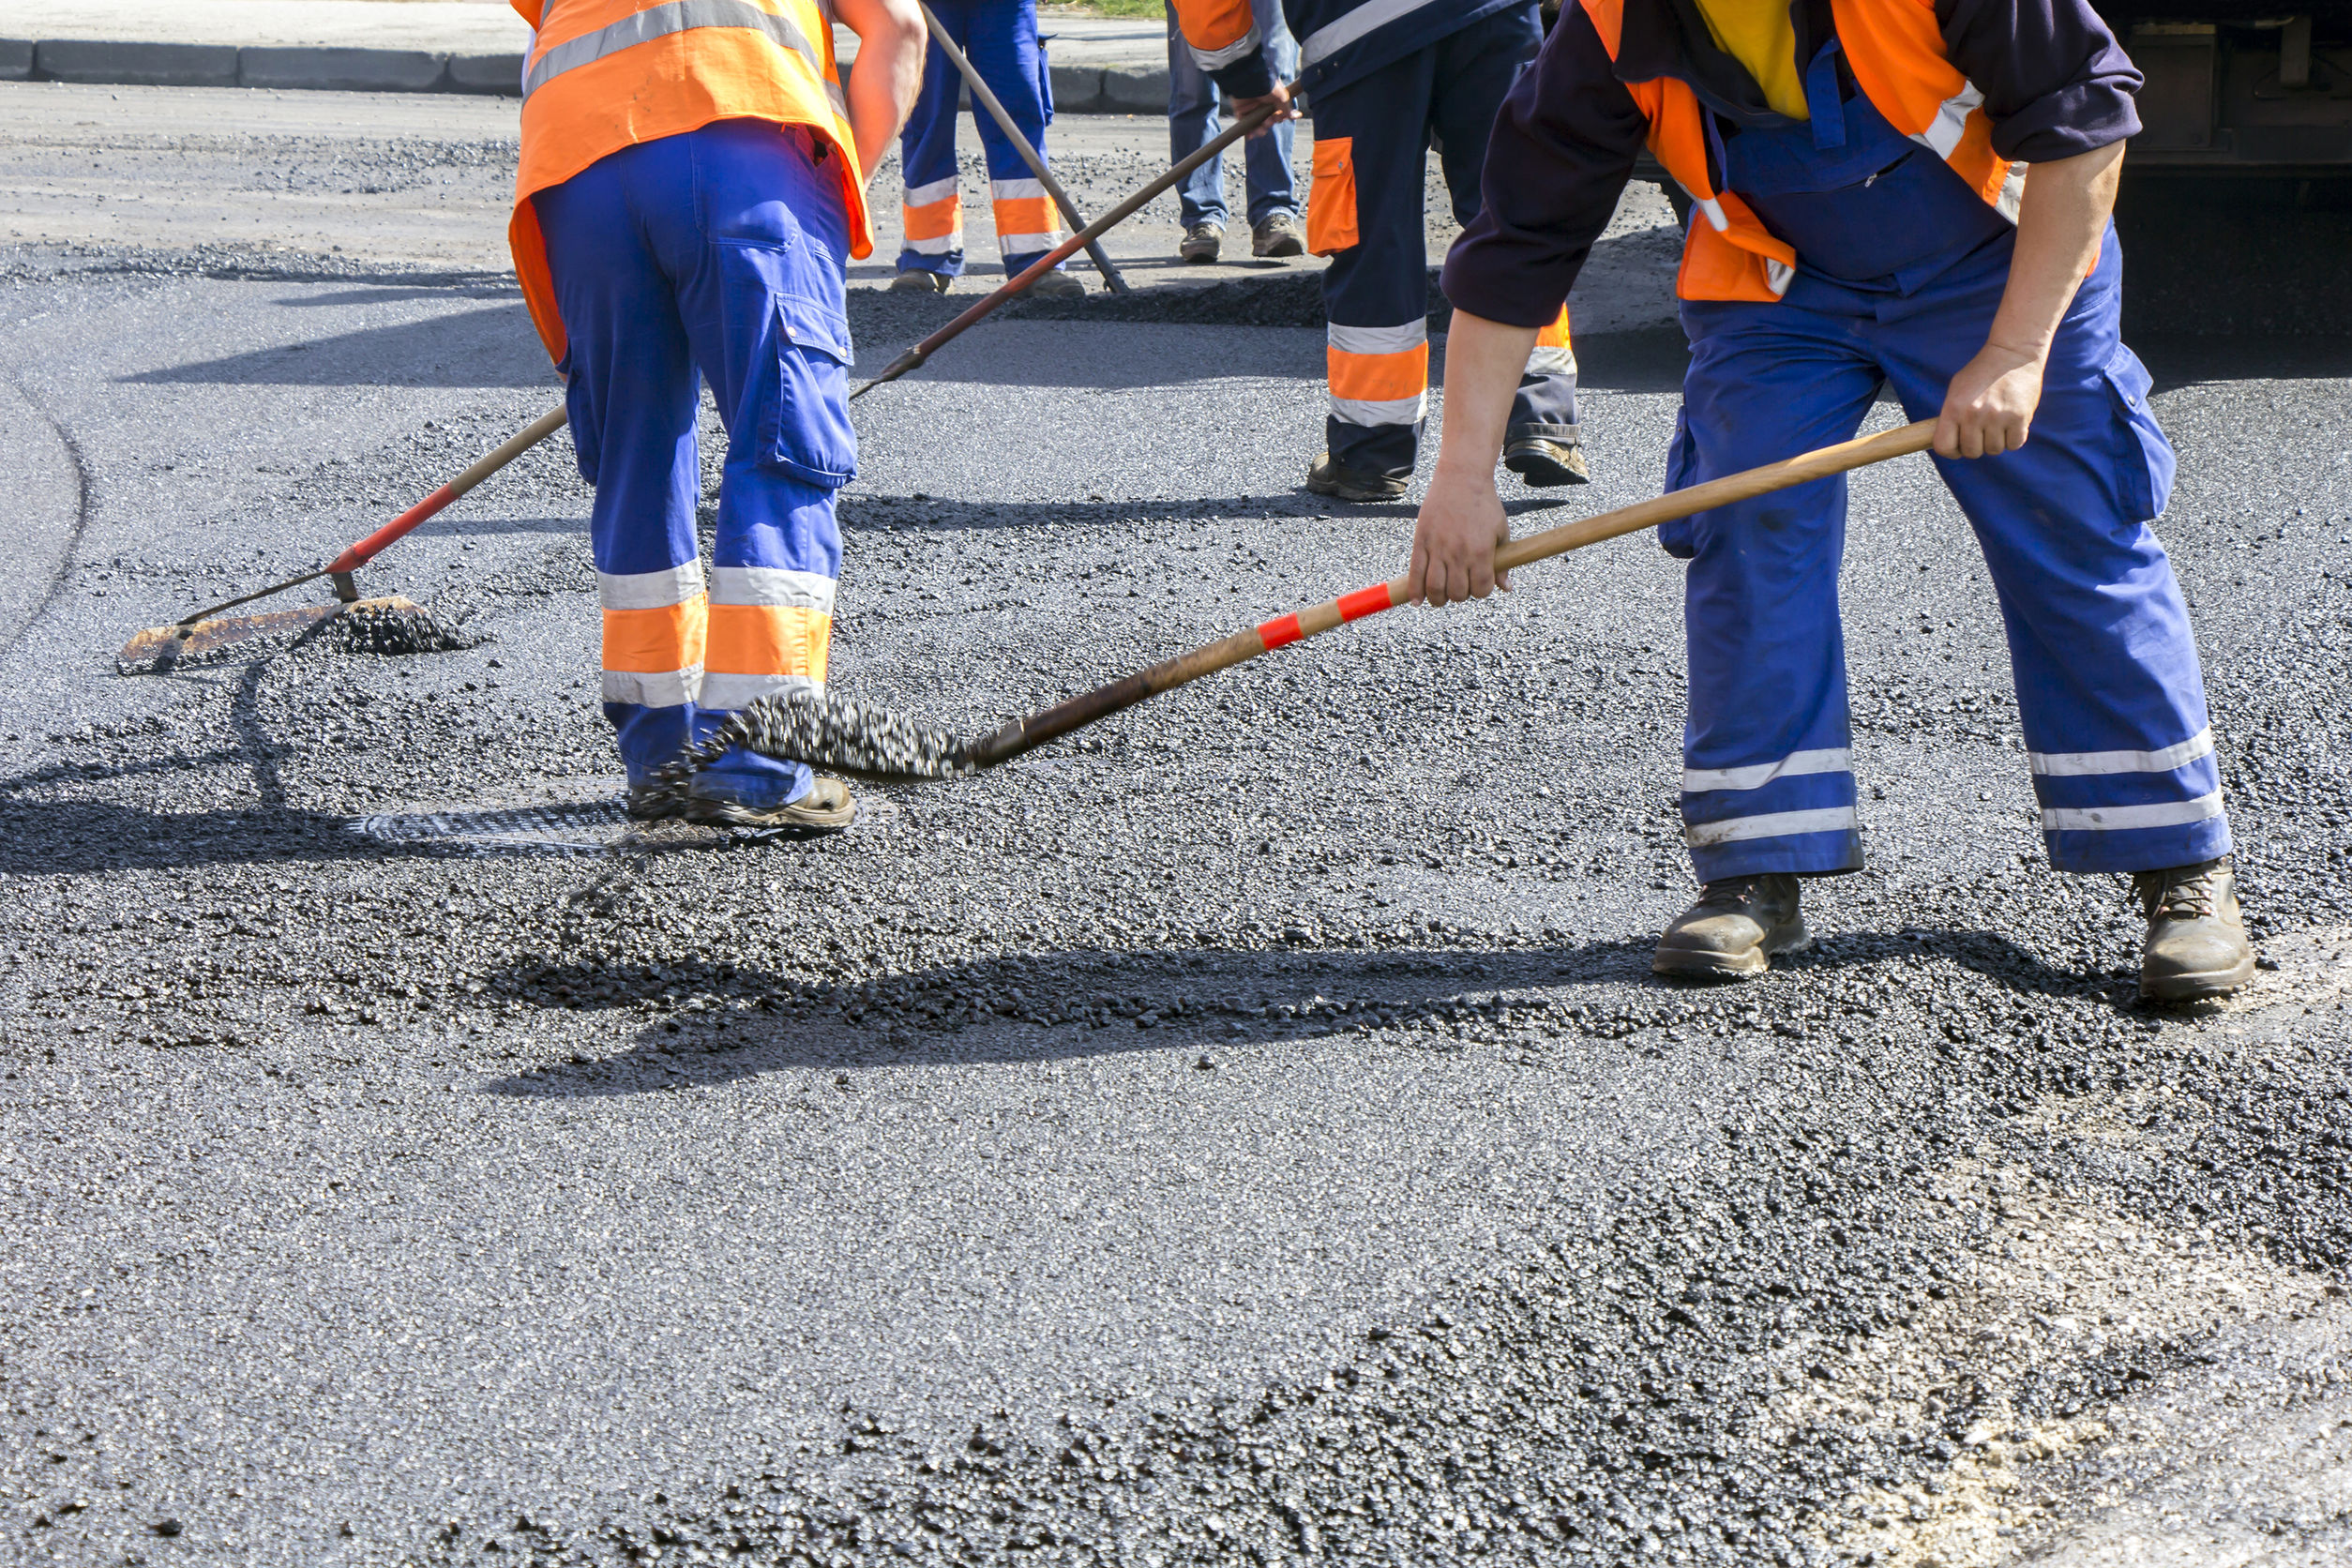 Asphalt Paving Company in Arbutus, Maryland | A&M Asphalt Paving